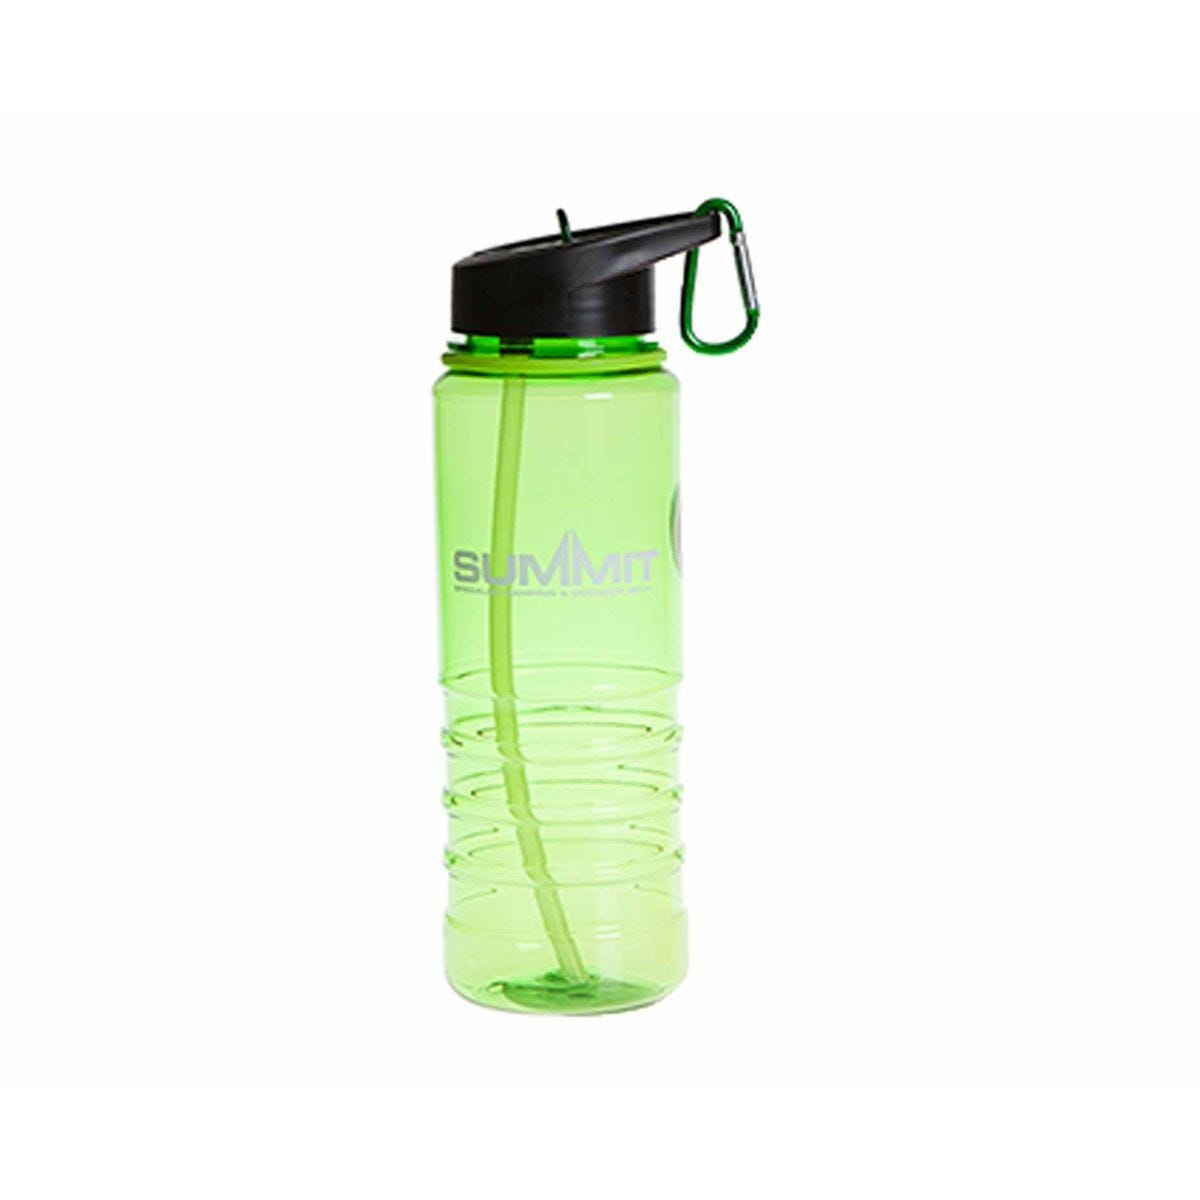 Summit Water Bottle with Carabiner 700ml Green